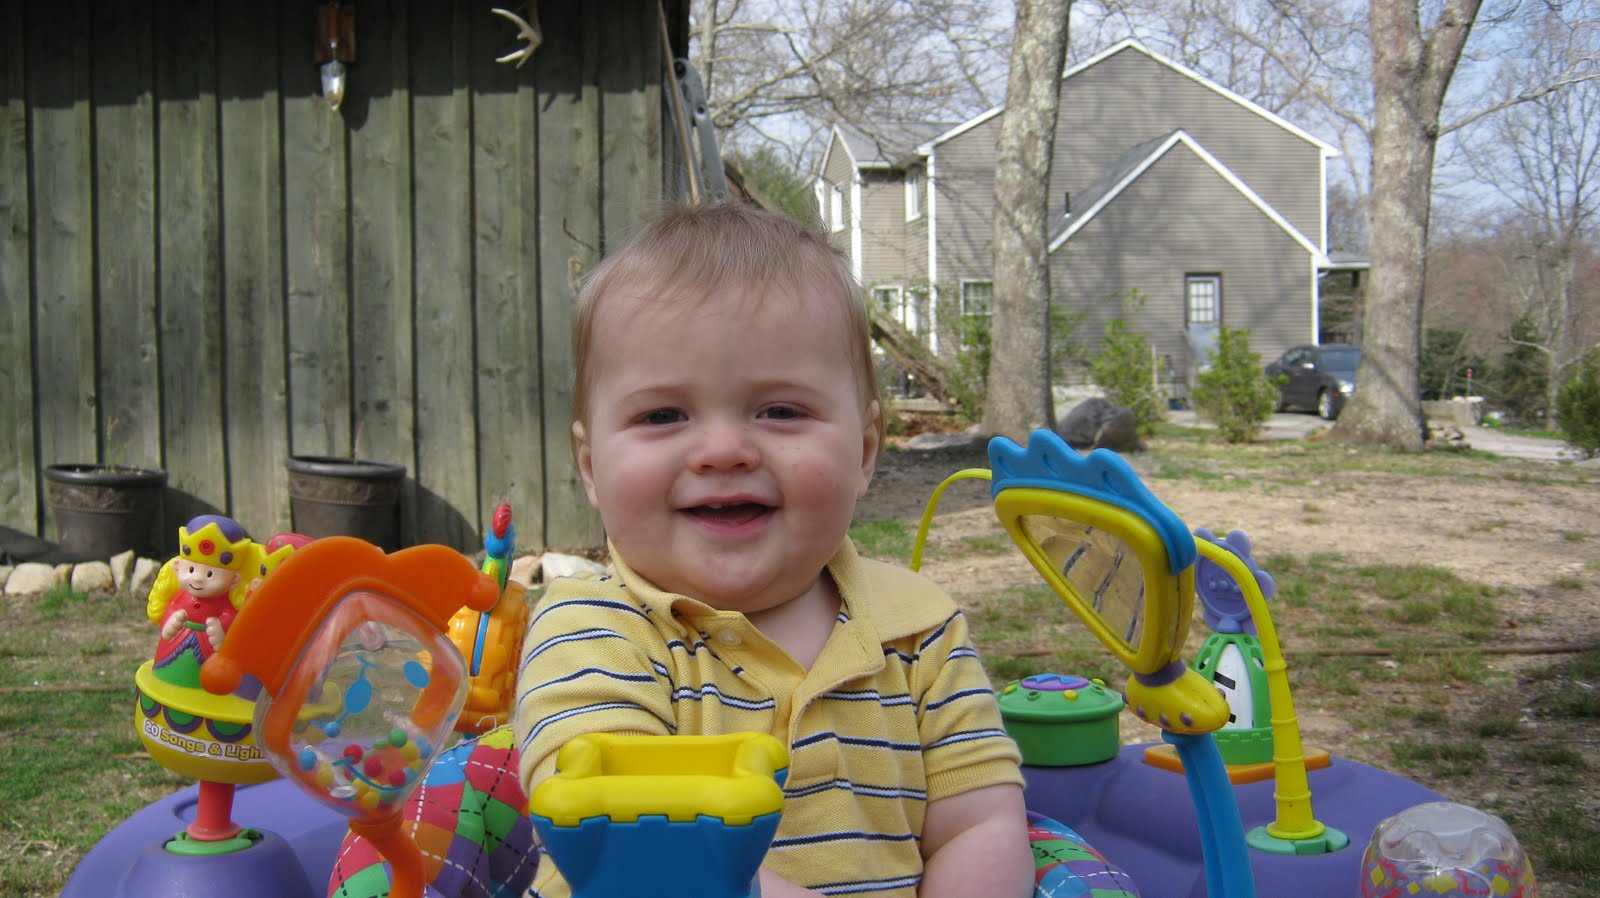 Monster and Bear: we have fun in the backyard